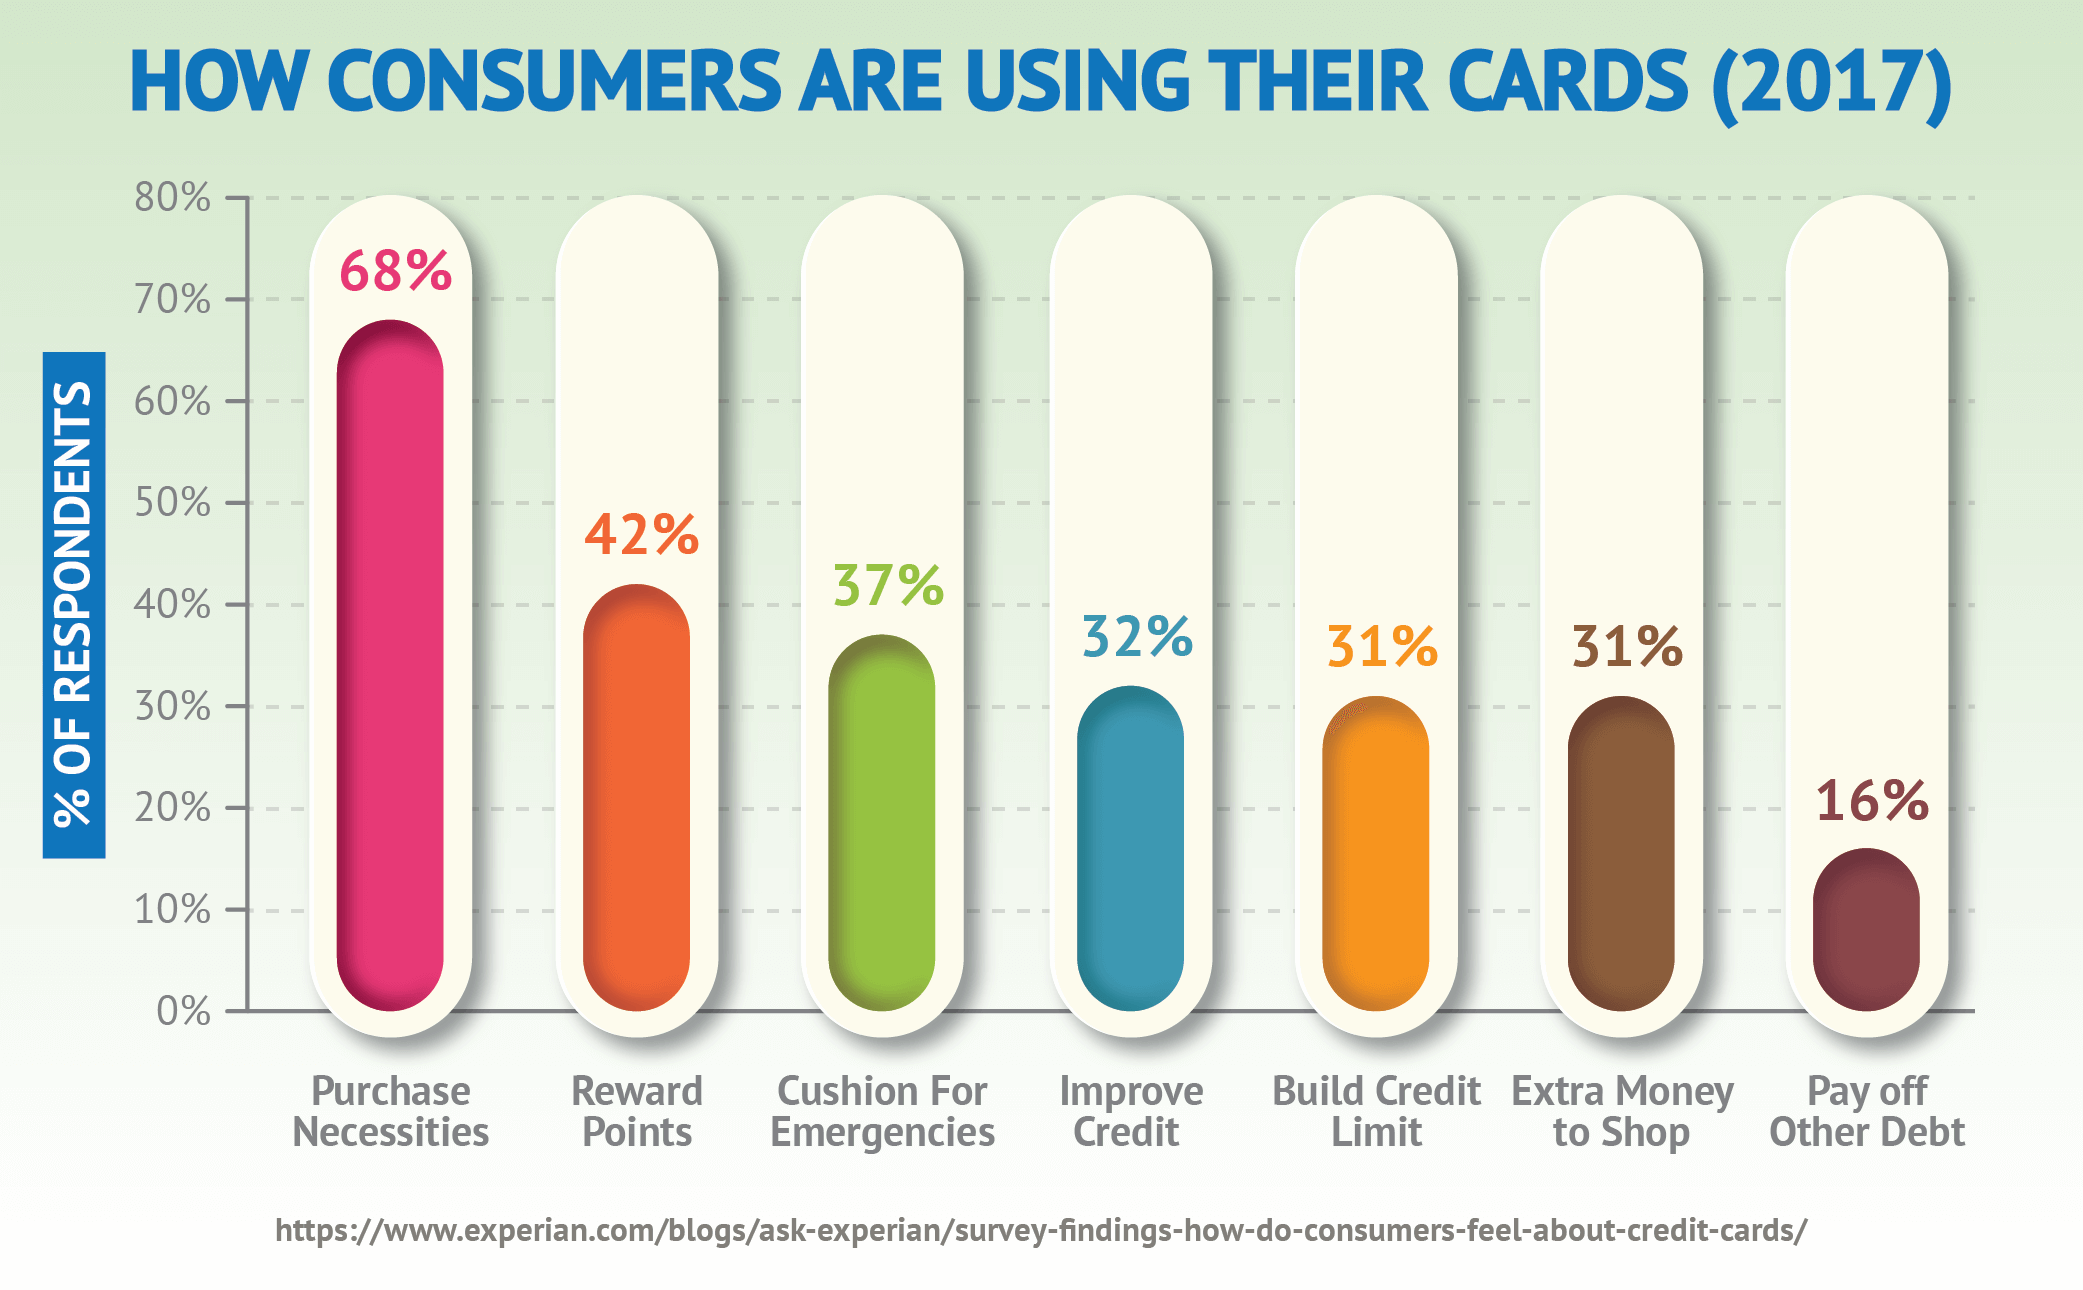 How Consumers Are Using Their Cards (2017)